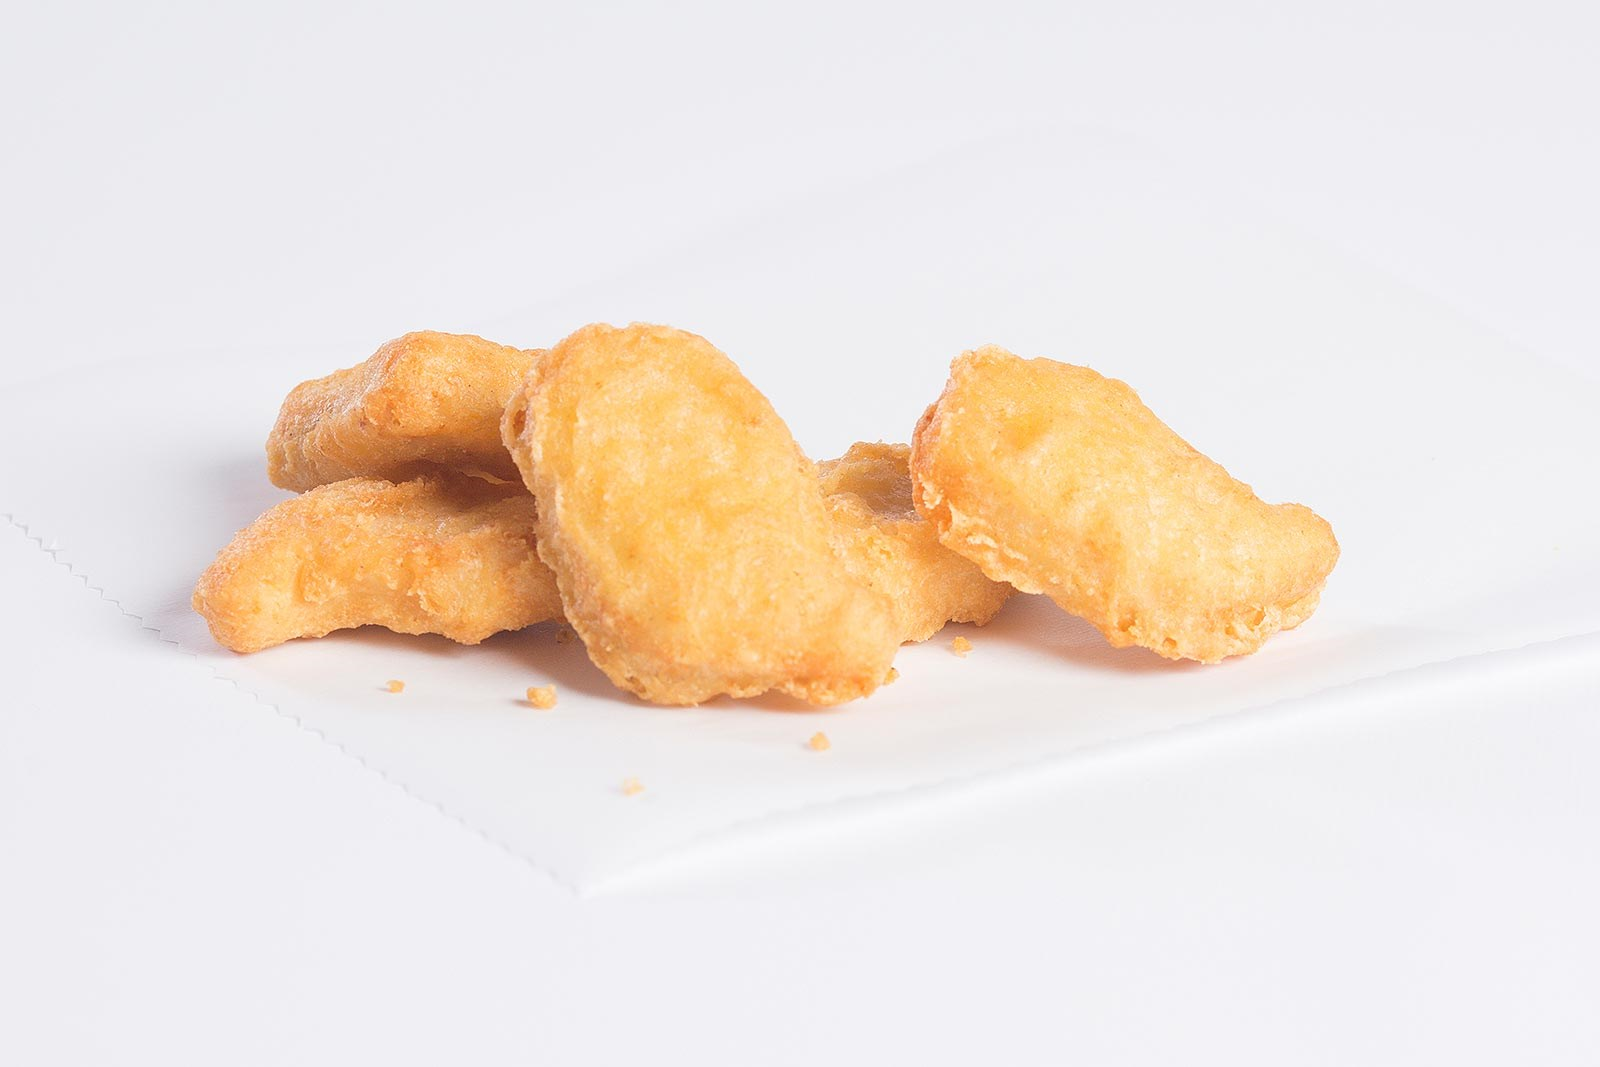 Tempura Battered Chicken Breast Nuggets